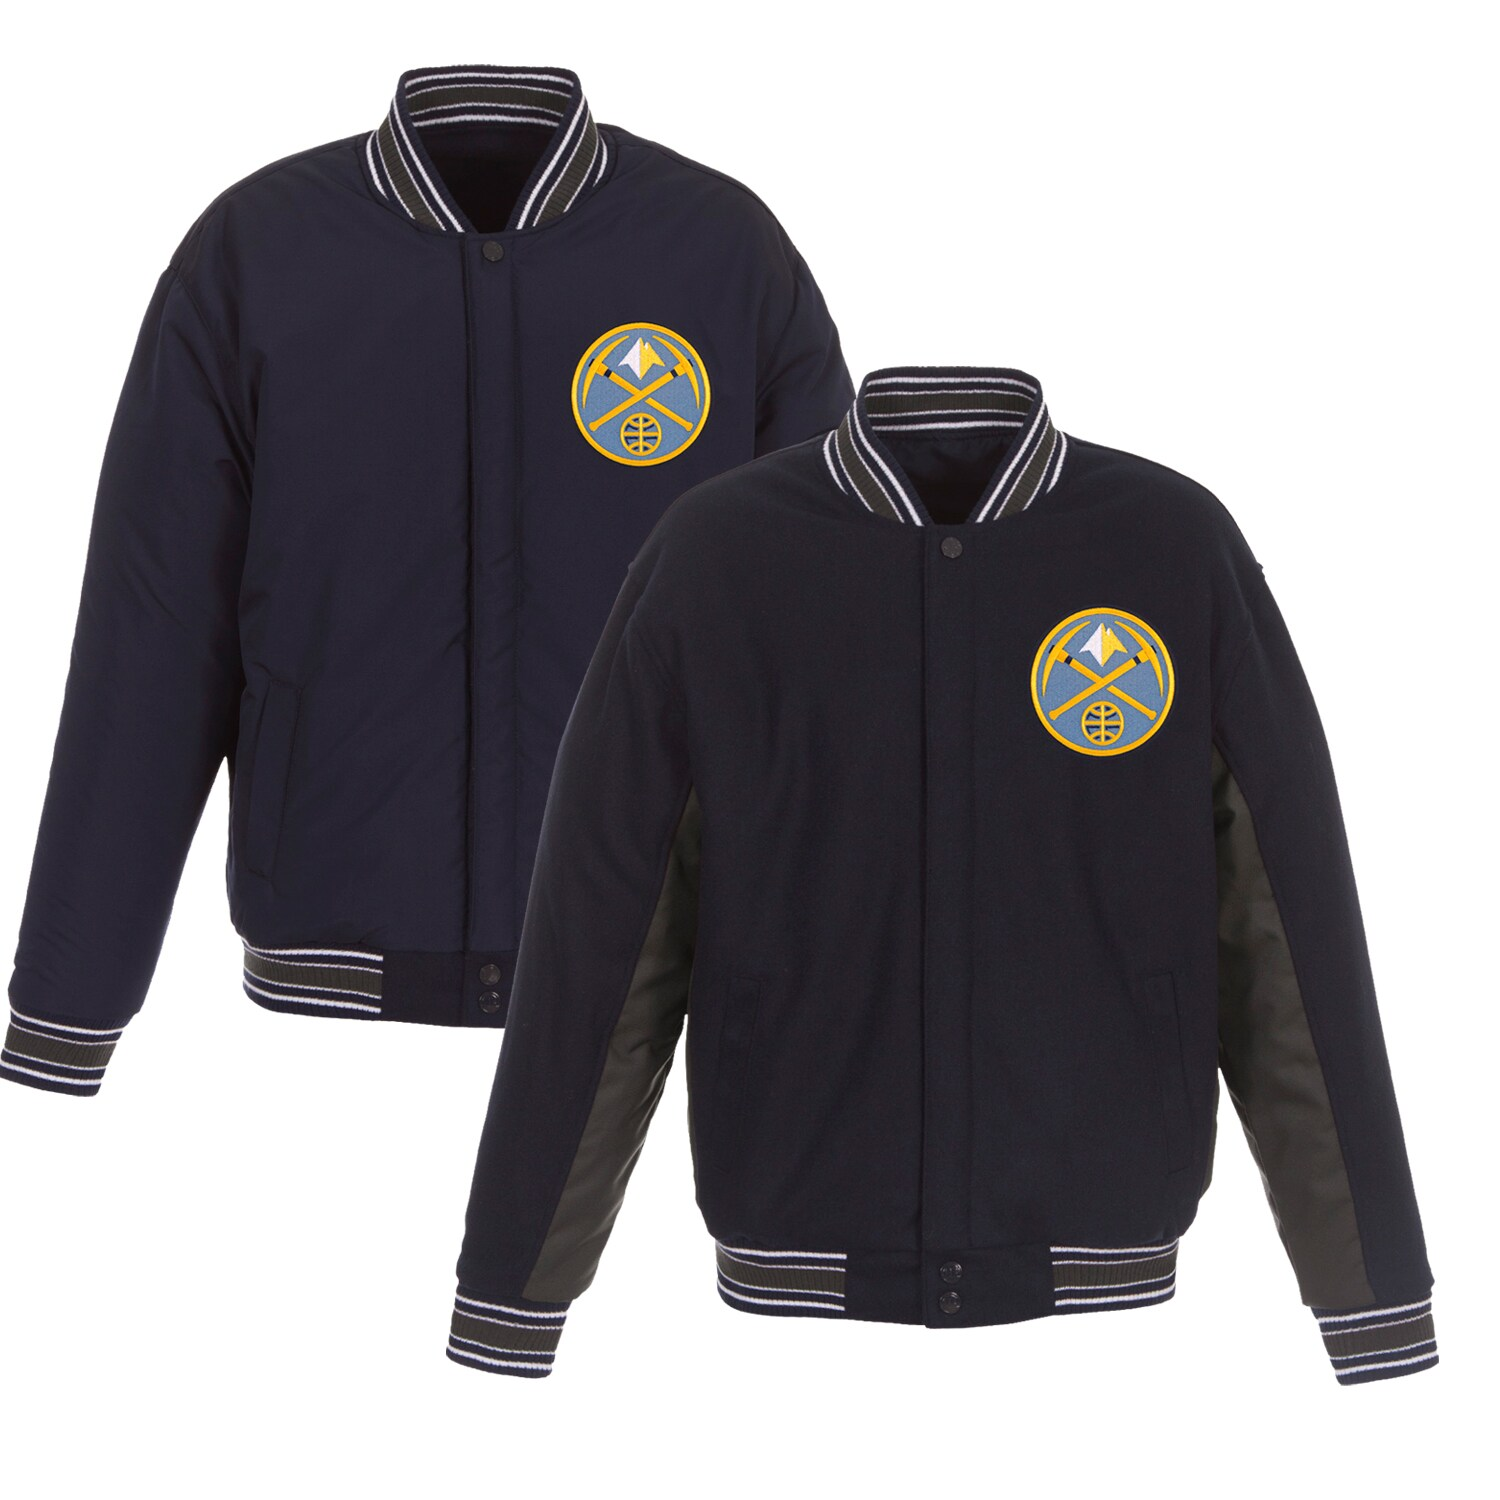 Denver Nuggets JH Design Reversible Wool & Poly-Twill Full-Snap Jacket - Navy/Charcoal